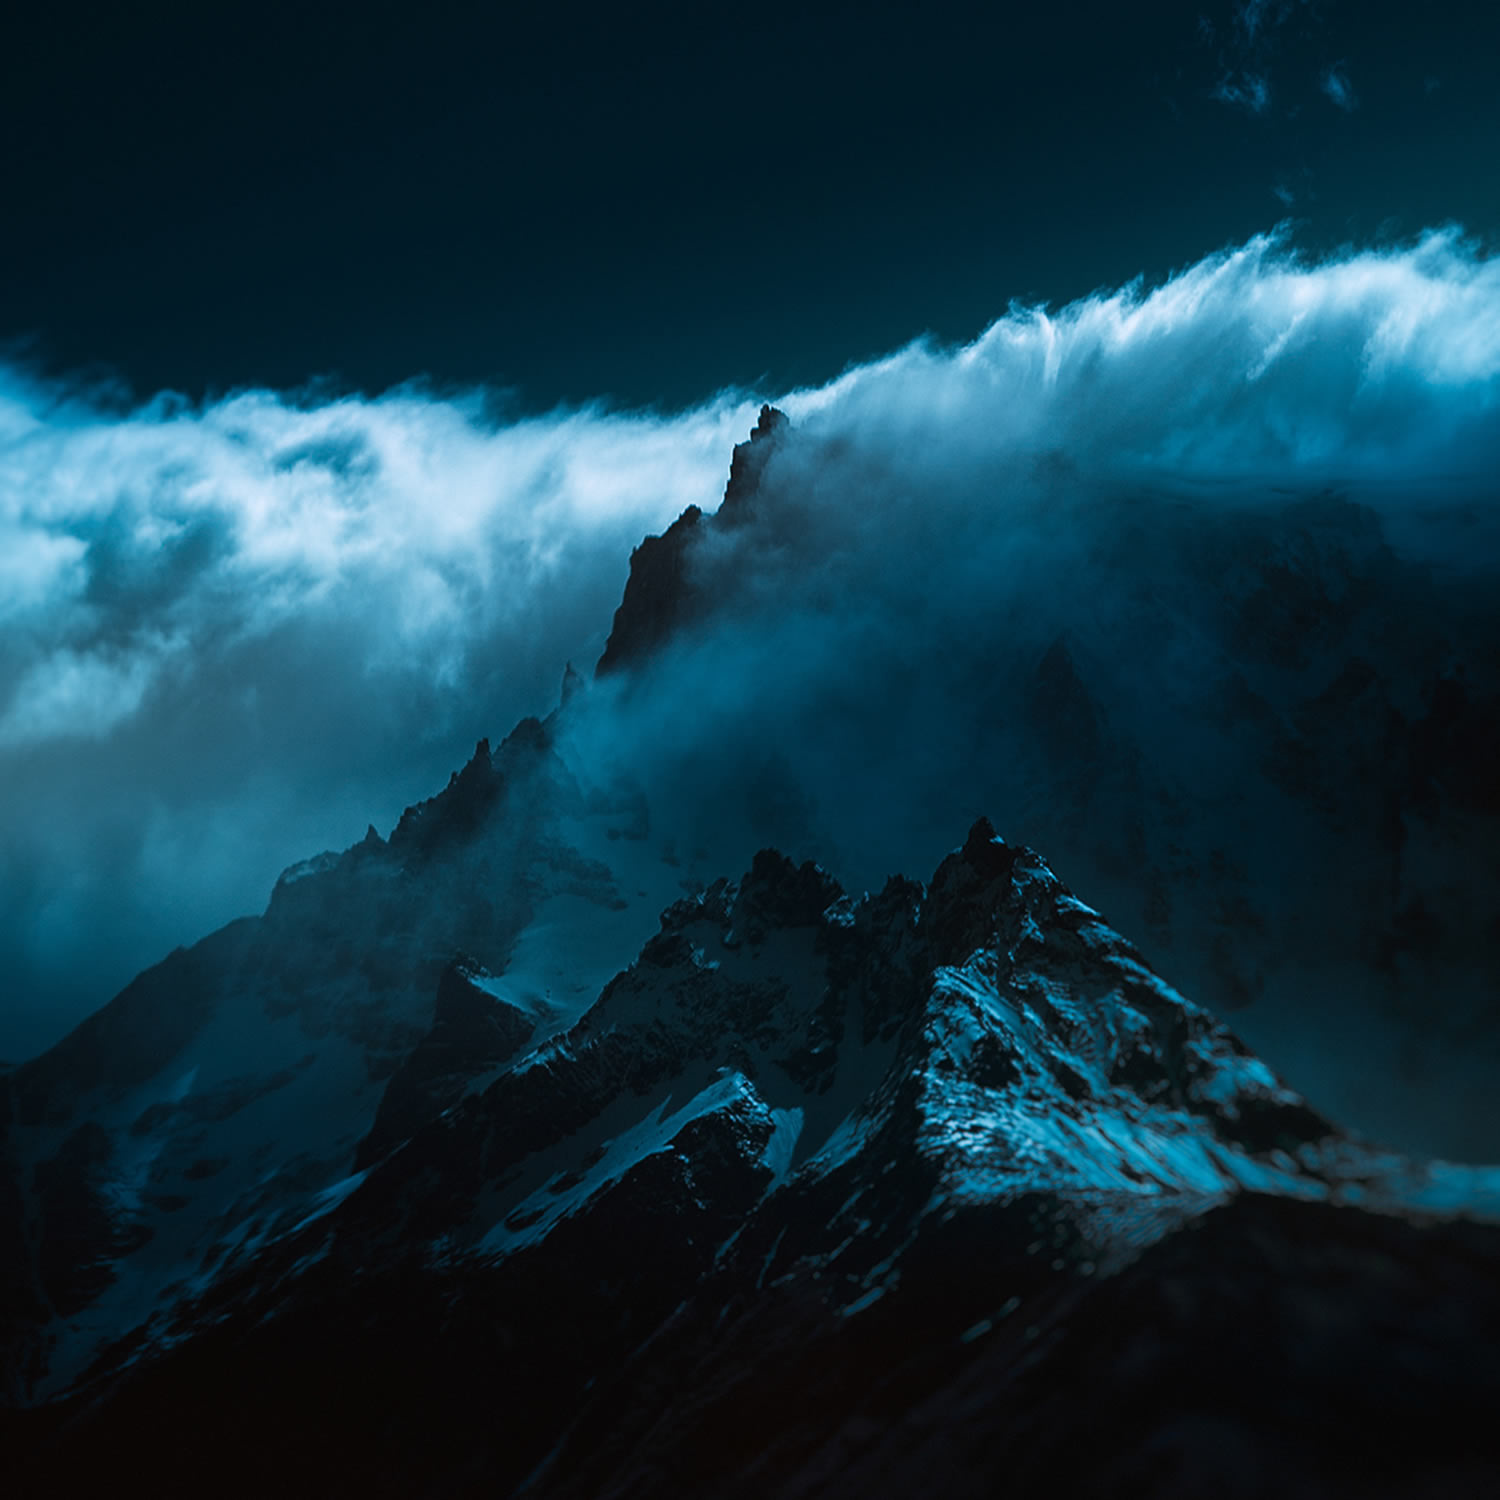 mountain top, blue clouds